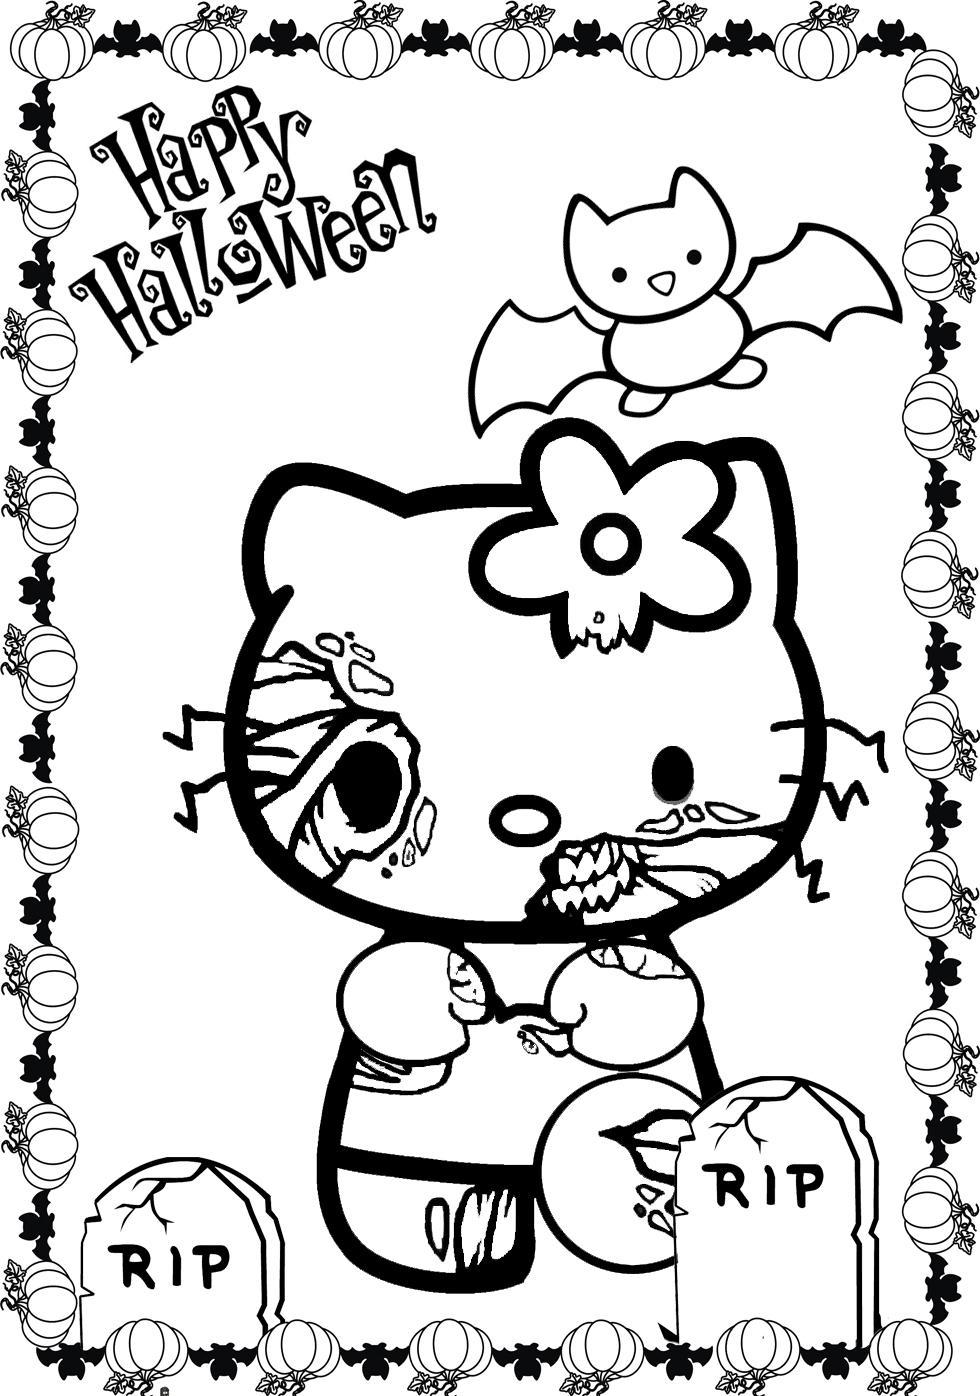 Free Scary Halloween Coloring Pages Coloring Pages Fullscary Halloween Hello Kittyloring Pages